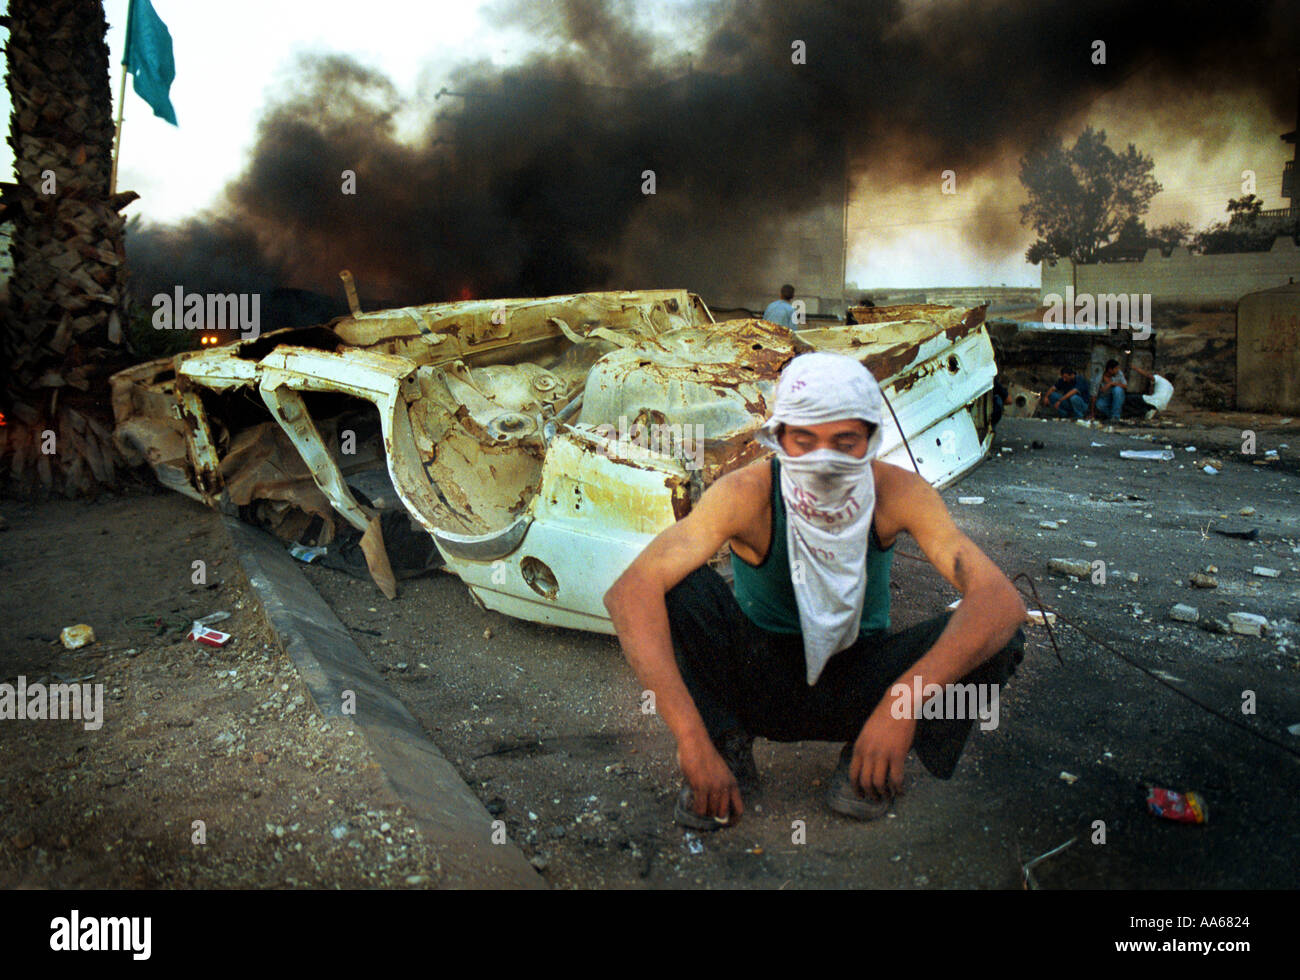 A Palestinian hides behind a burning car and tire and tries to catch his breath after Israeli soldiers fired tear gas in the - Stock Image